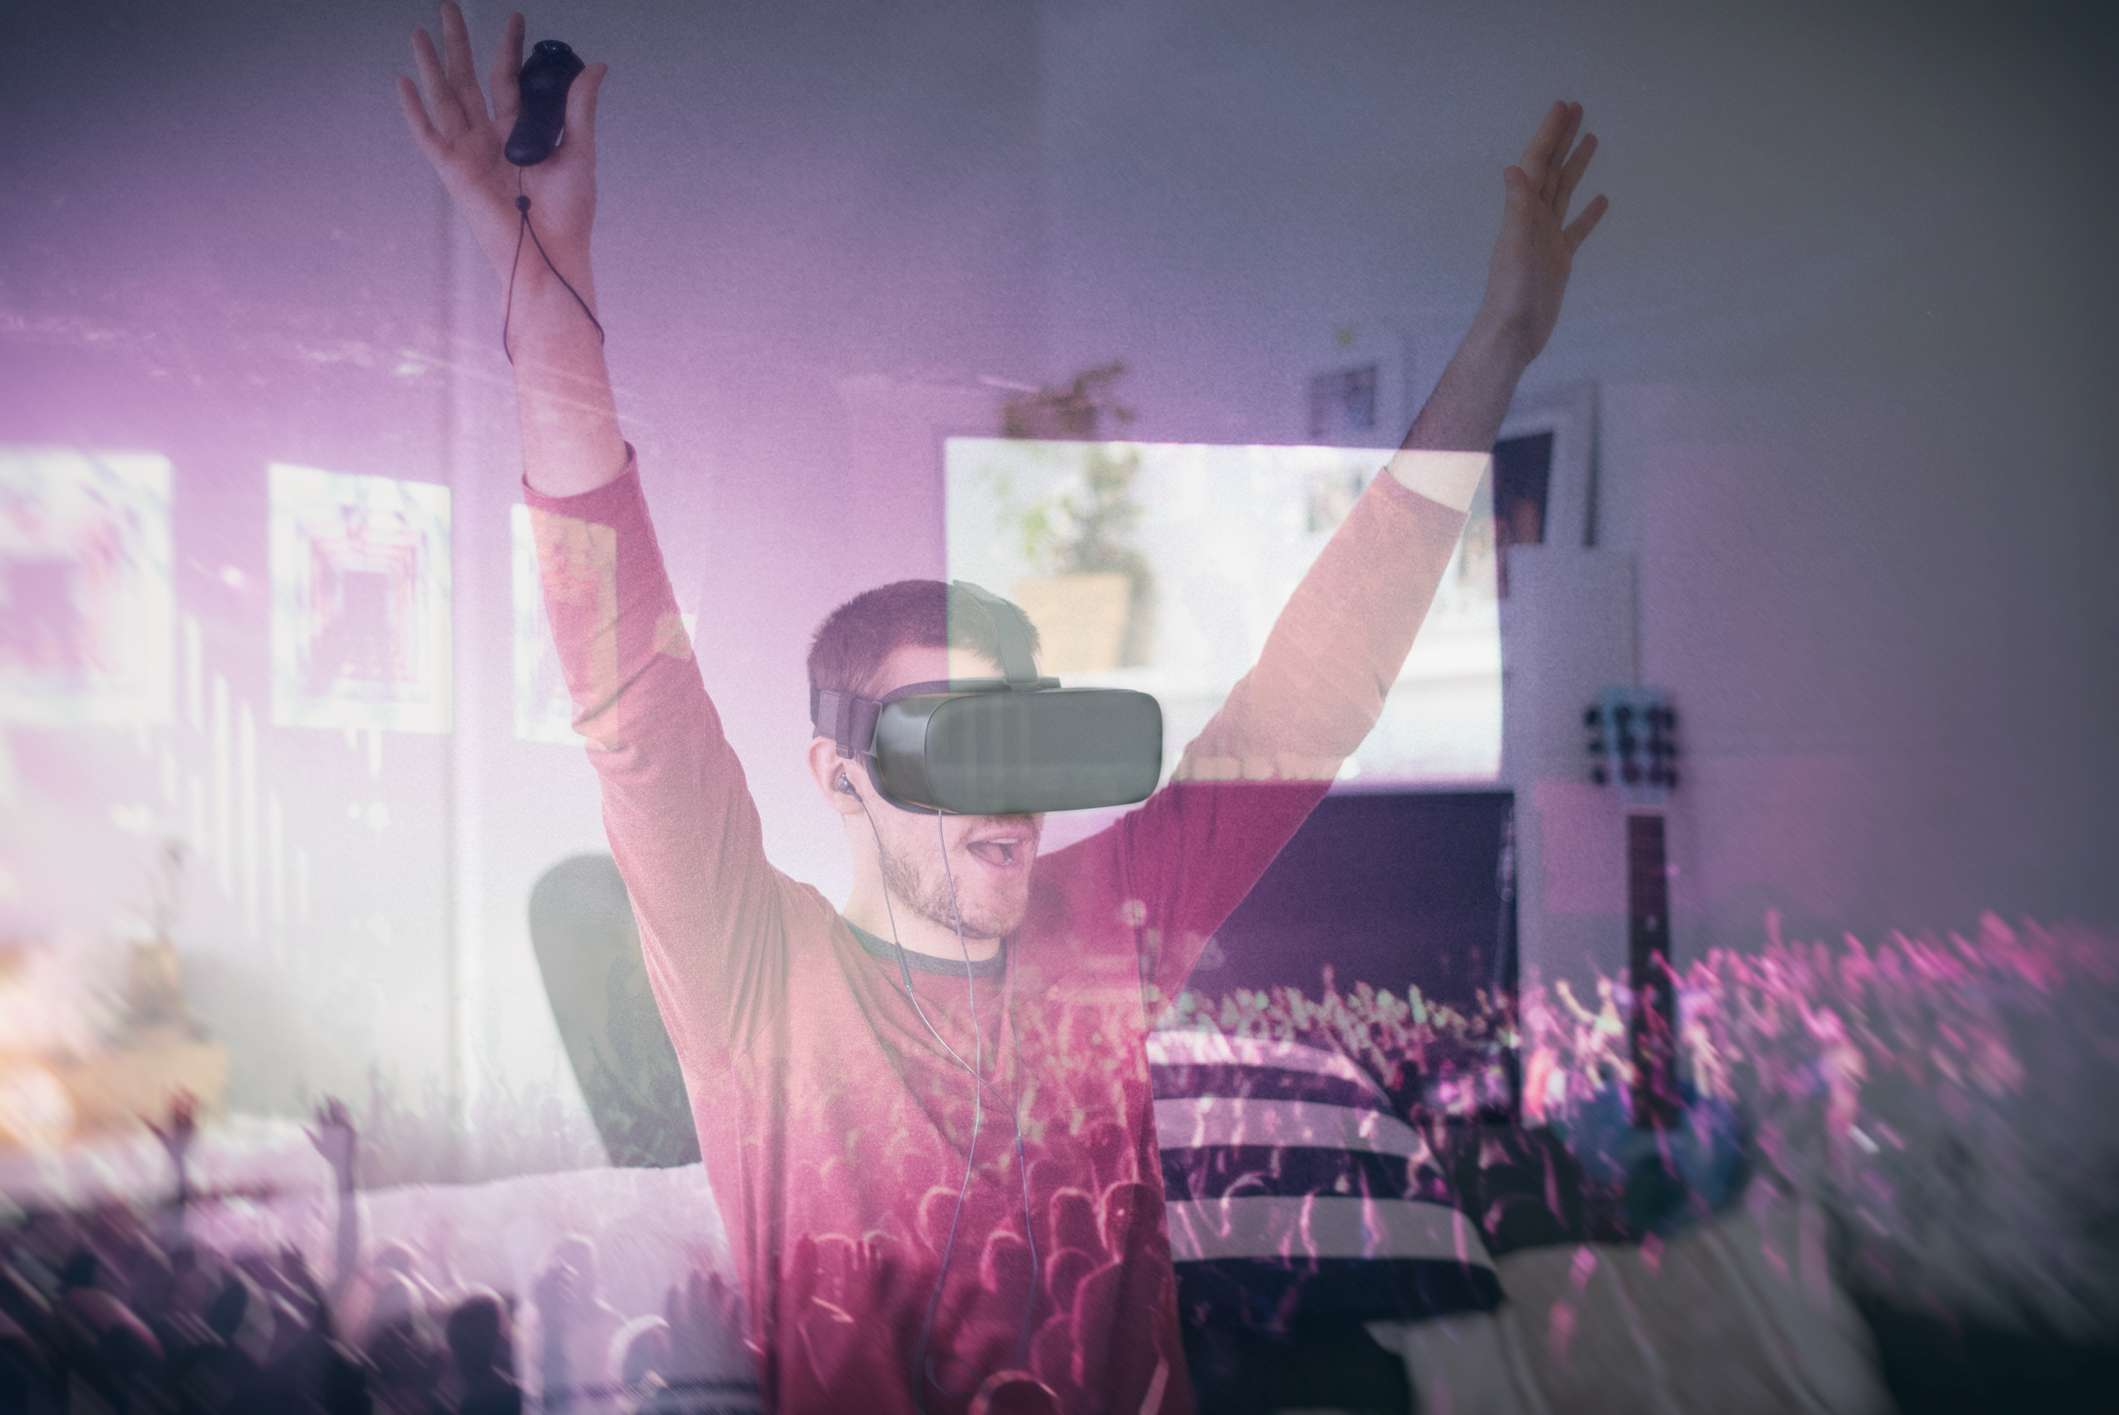 Someone watching a live concert in virtual reality.